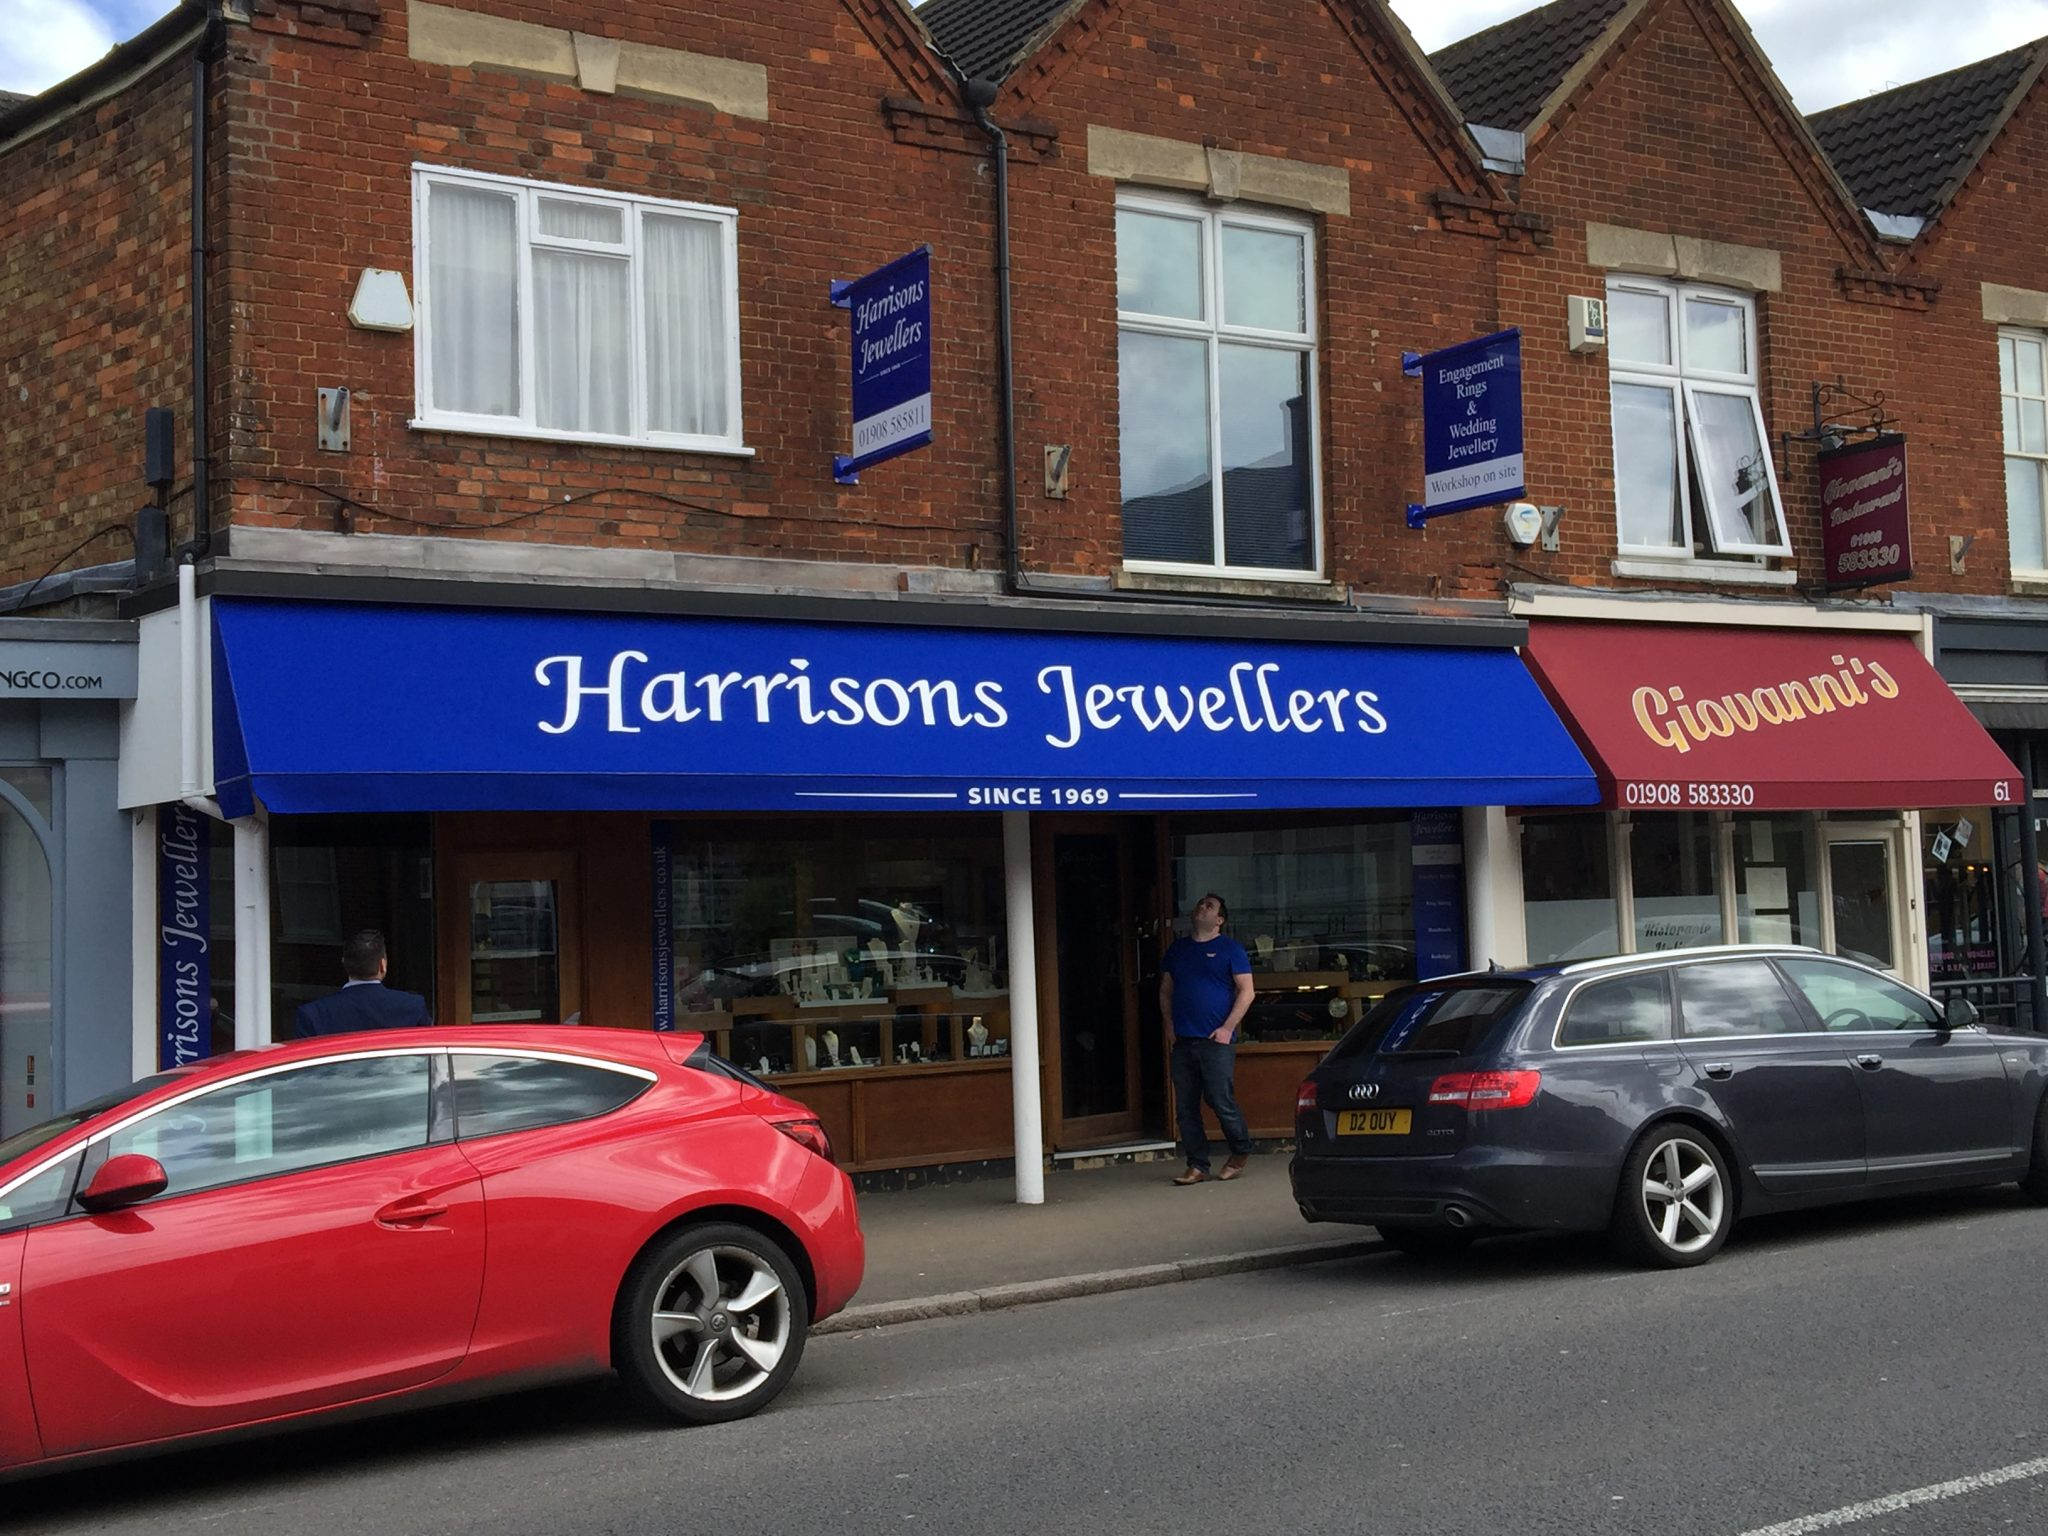 Harrisons Jewellers store